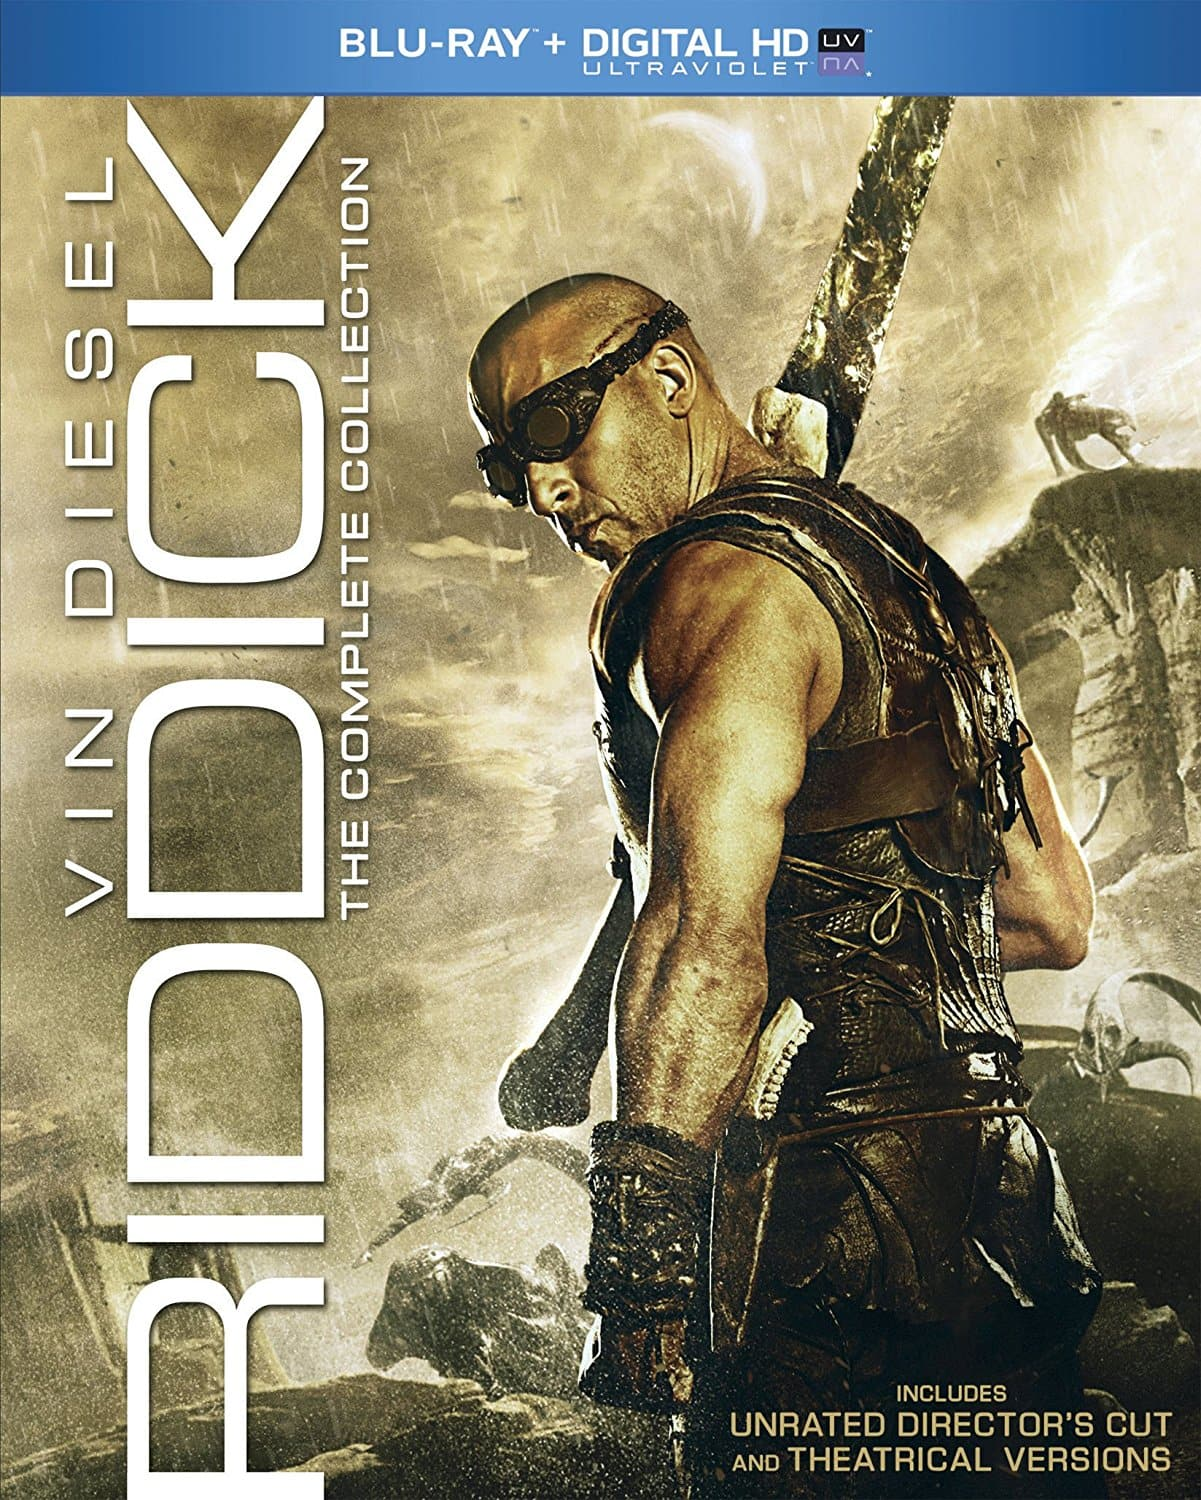 Riddick: The Complete Collection (Blu-Ray + Digital HD) $13.99 via Amazon